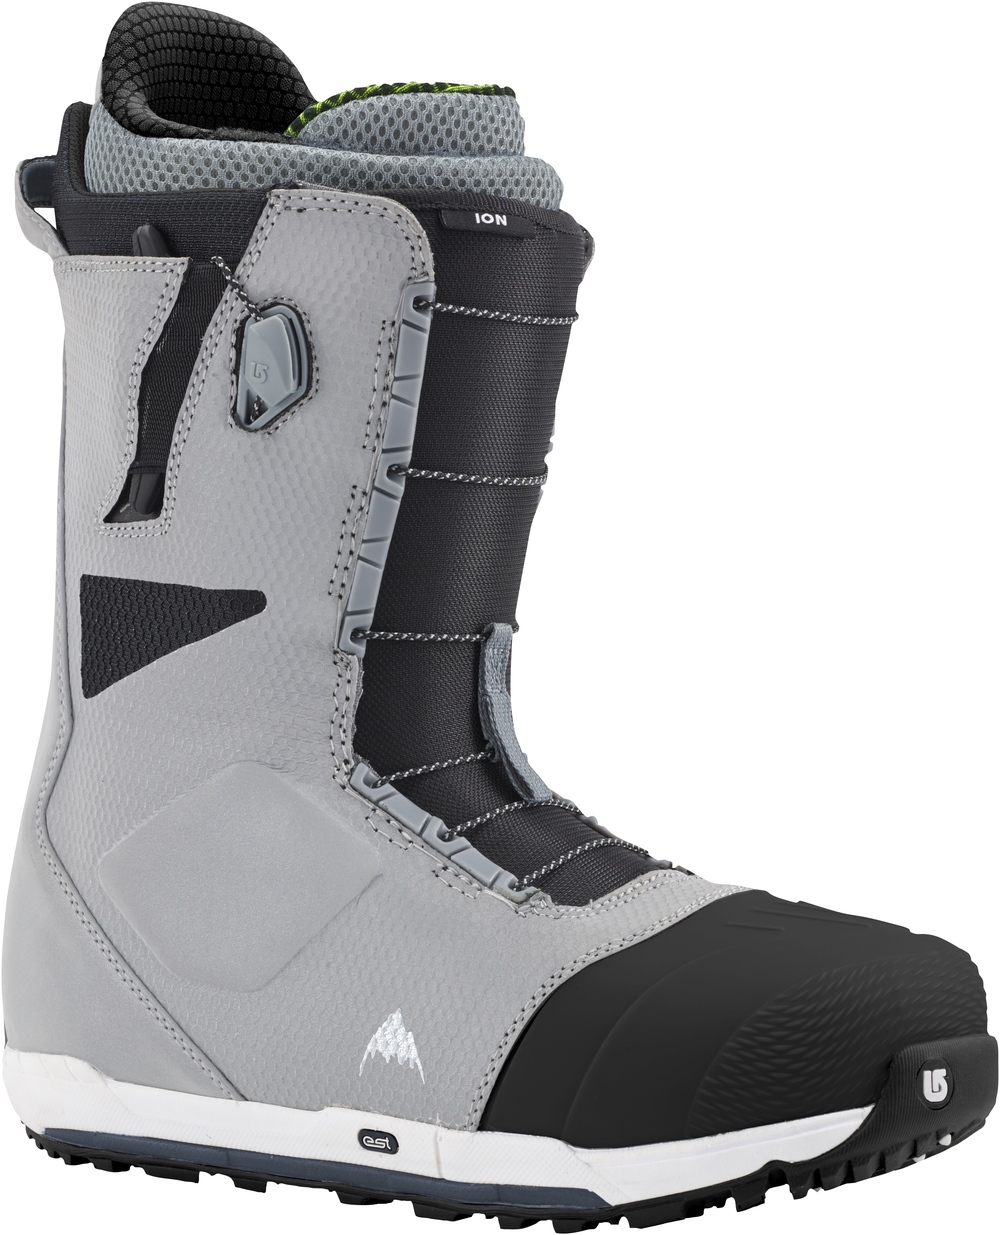 Burton x New Balance Ion LTD Snowboard Boot, $500